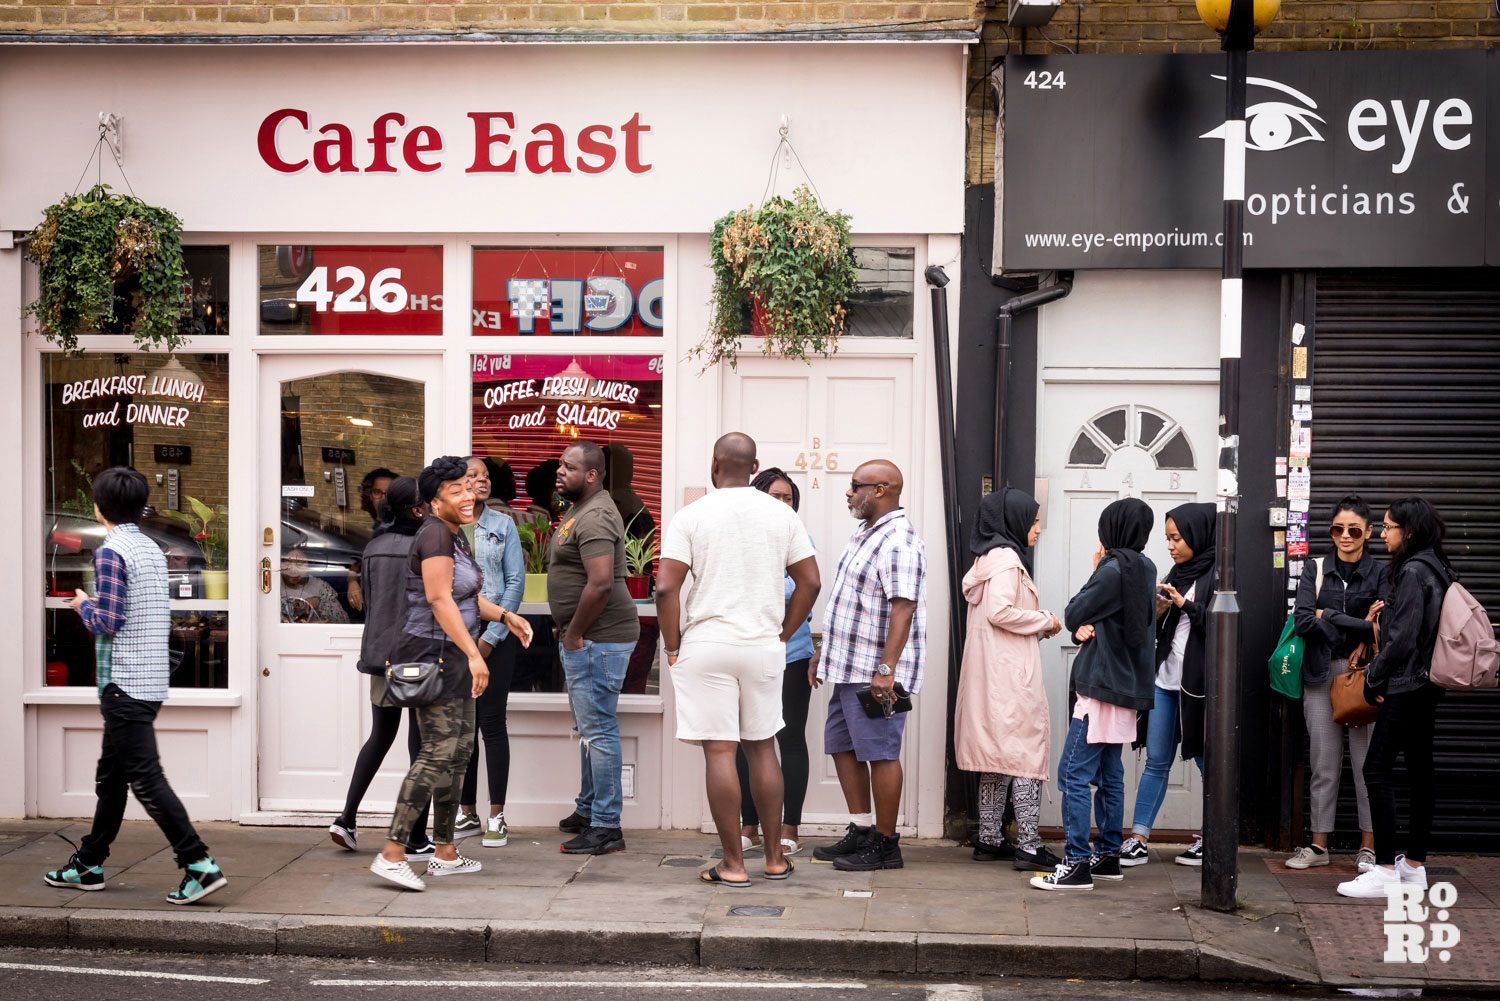 Queue outside Cafe East Roman Road, Bow